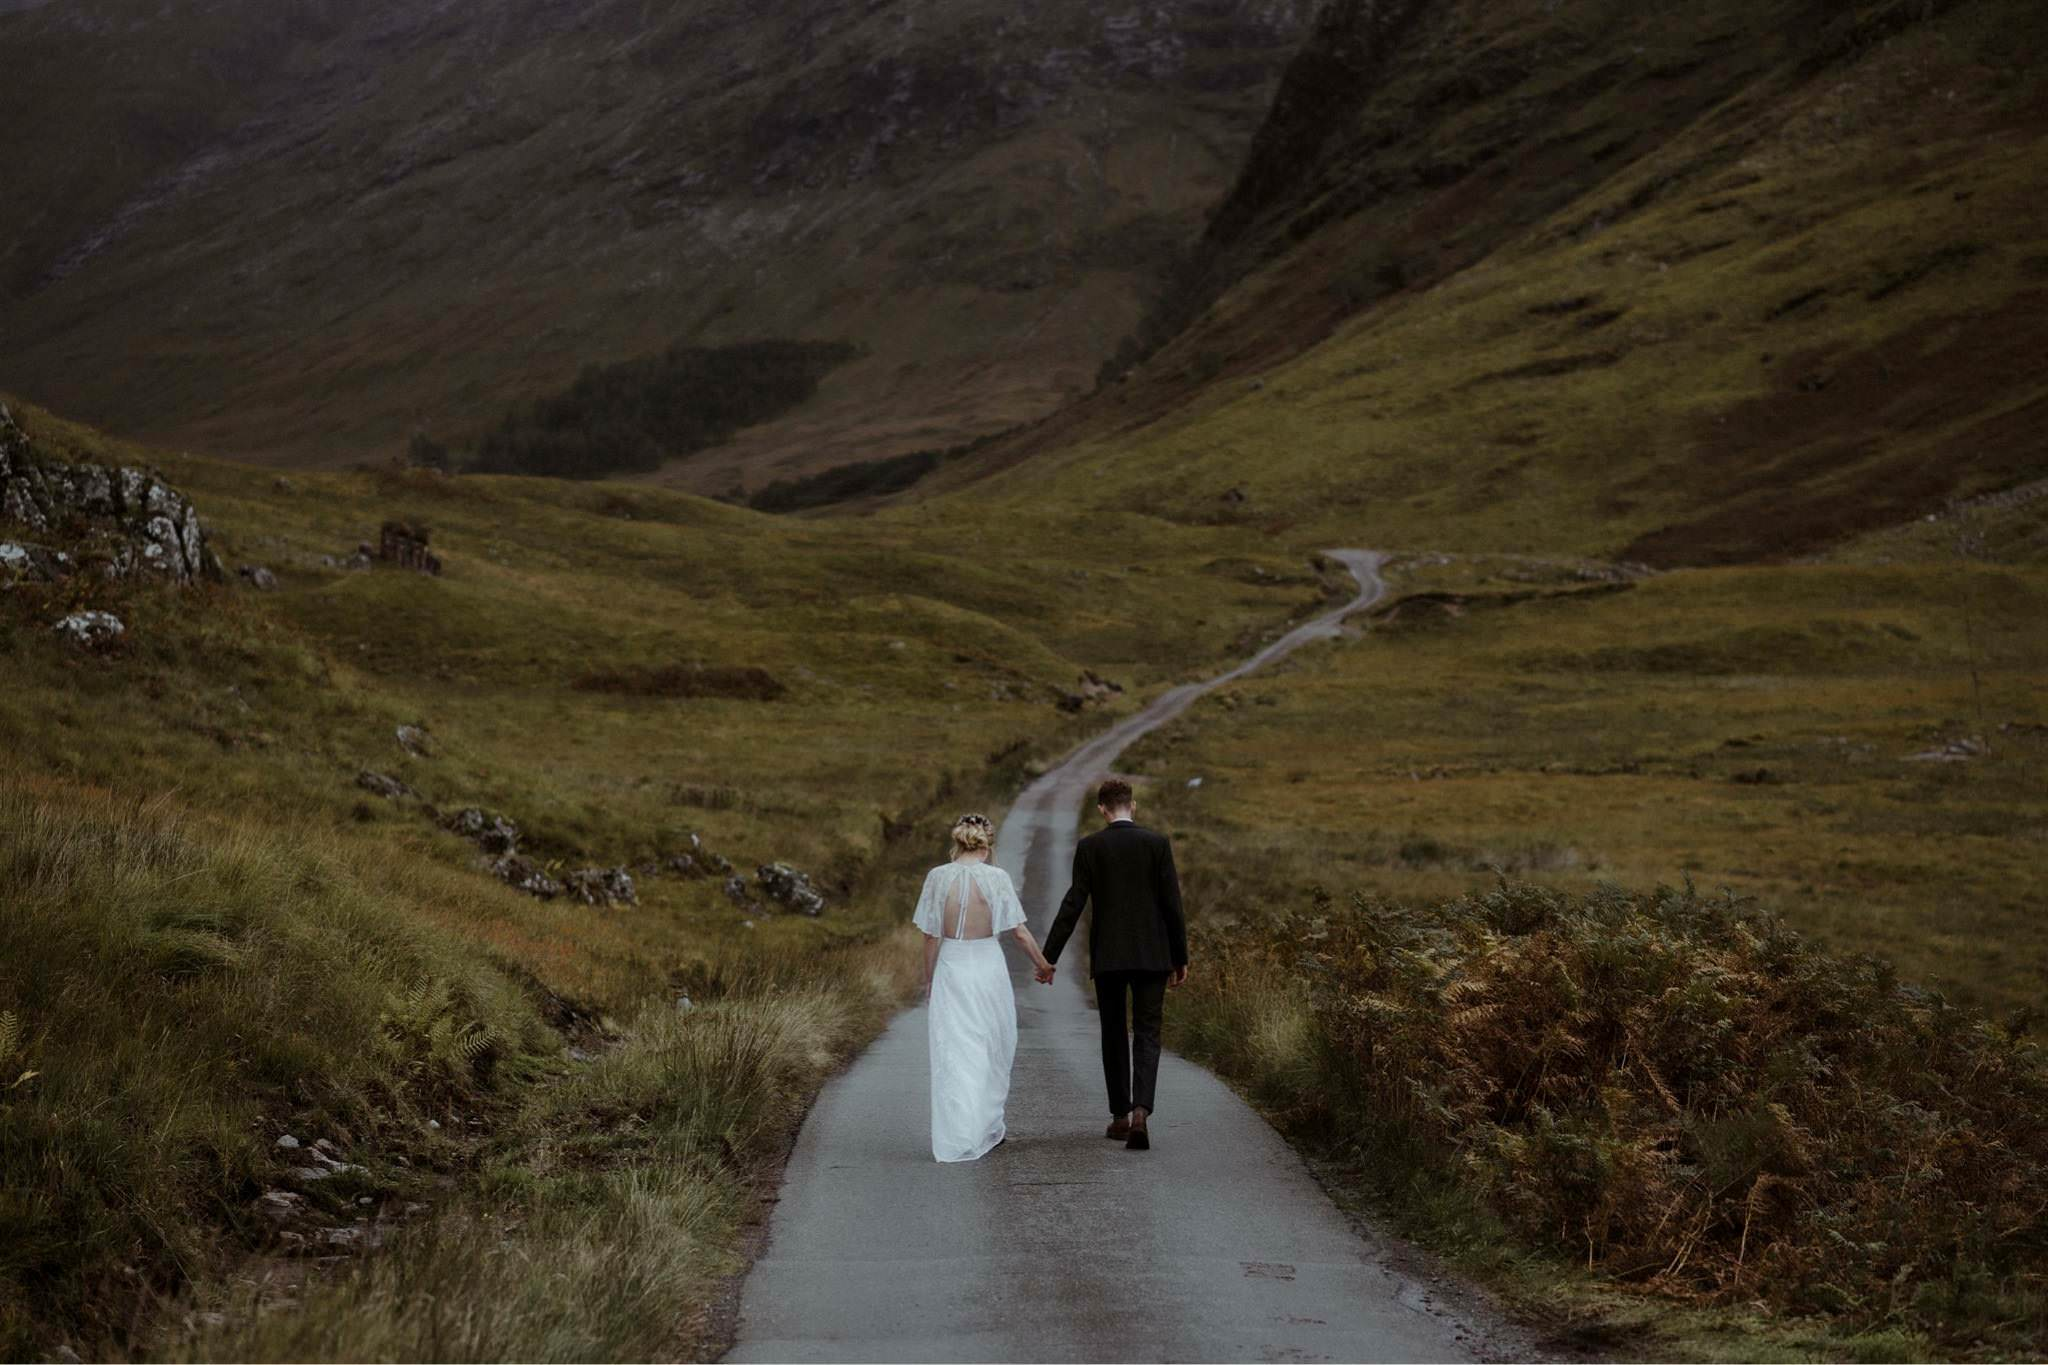 Bride and groom walking up road in Glen Etive after their Glencoe elopement wedding in Scotland